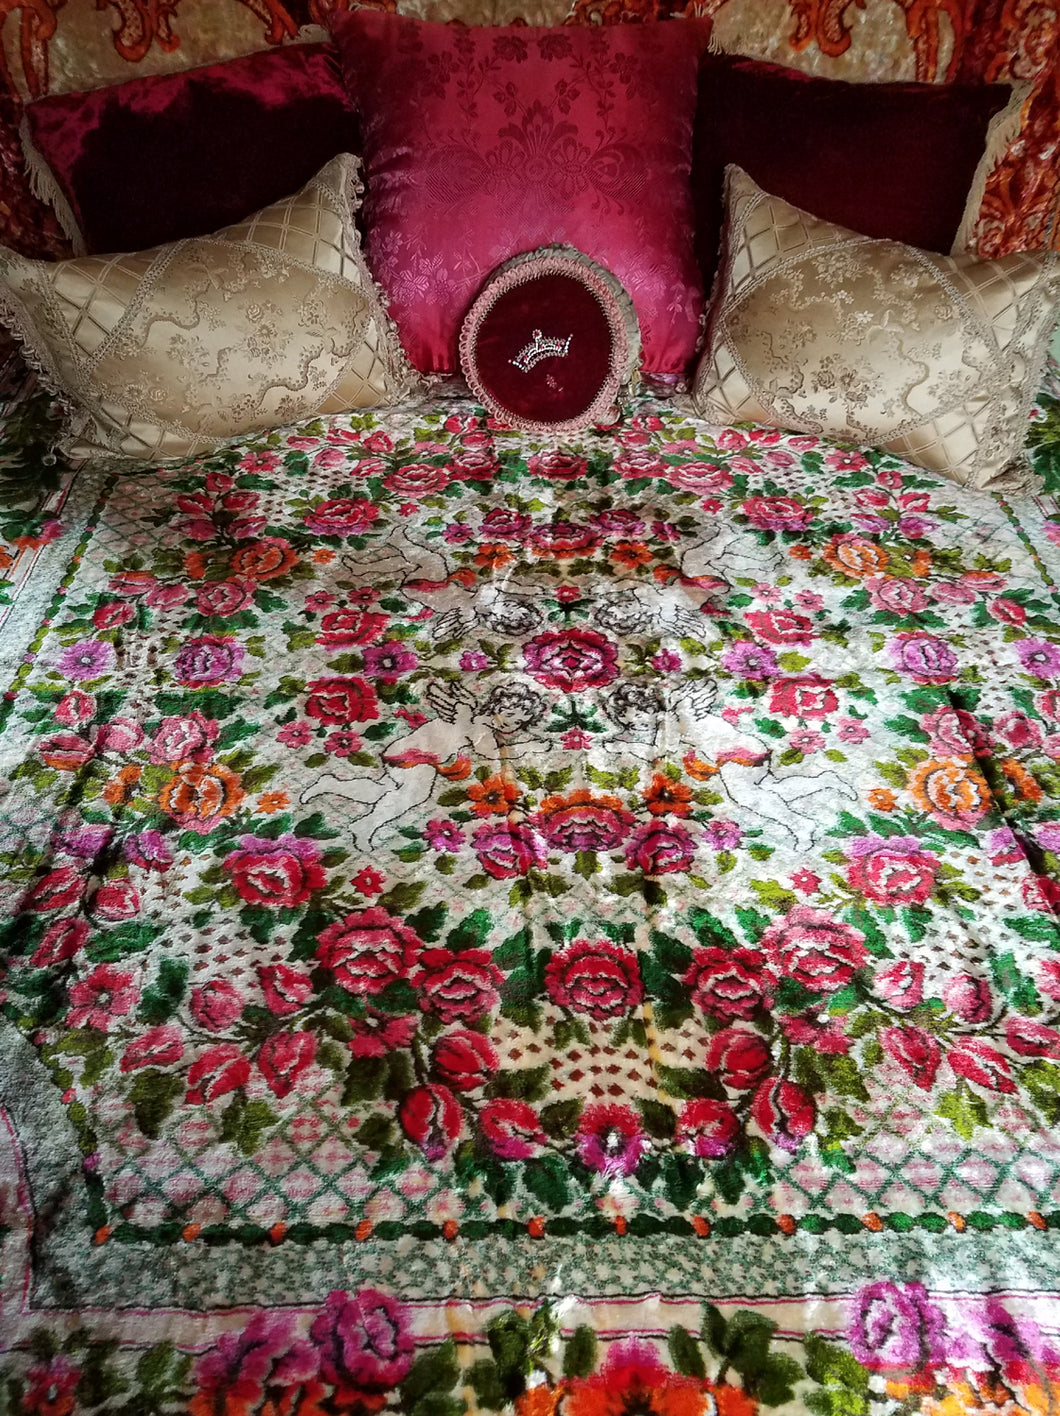 Itlaian Velvet Bedspread, Mint Condition, 86